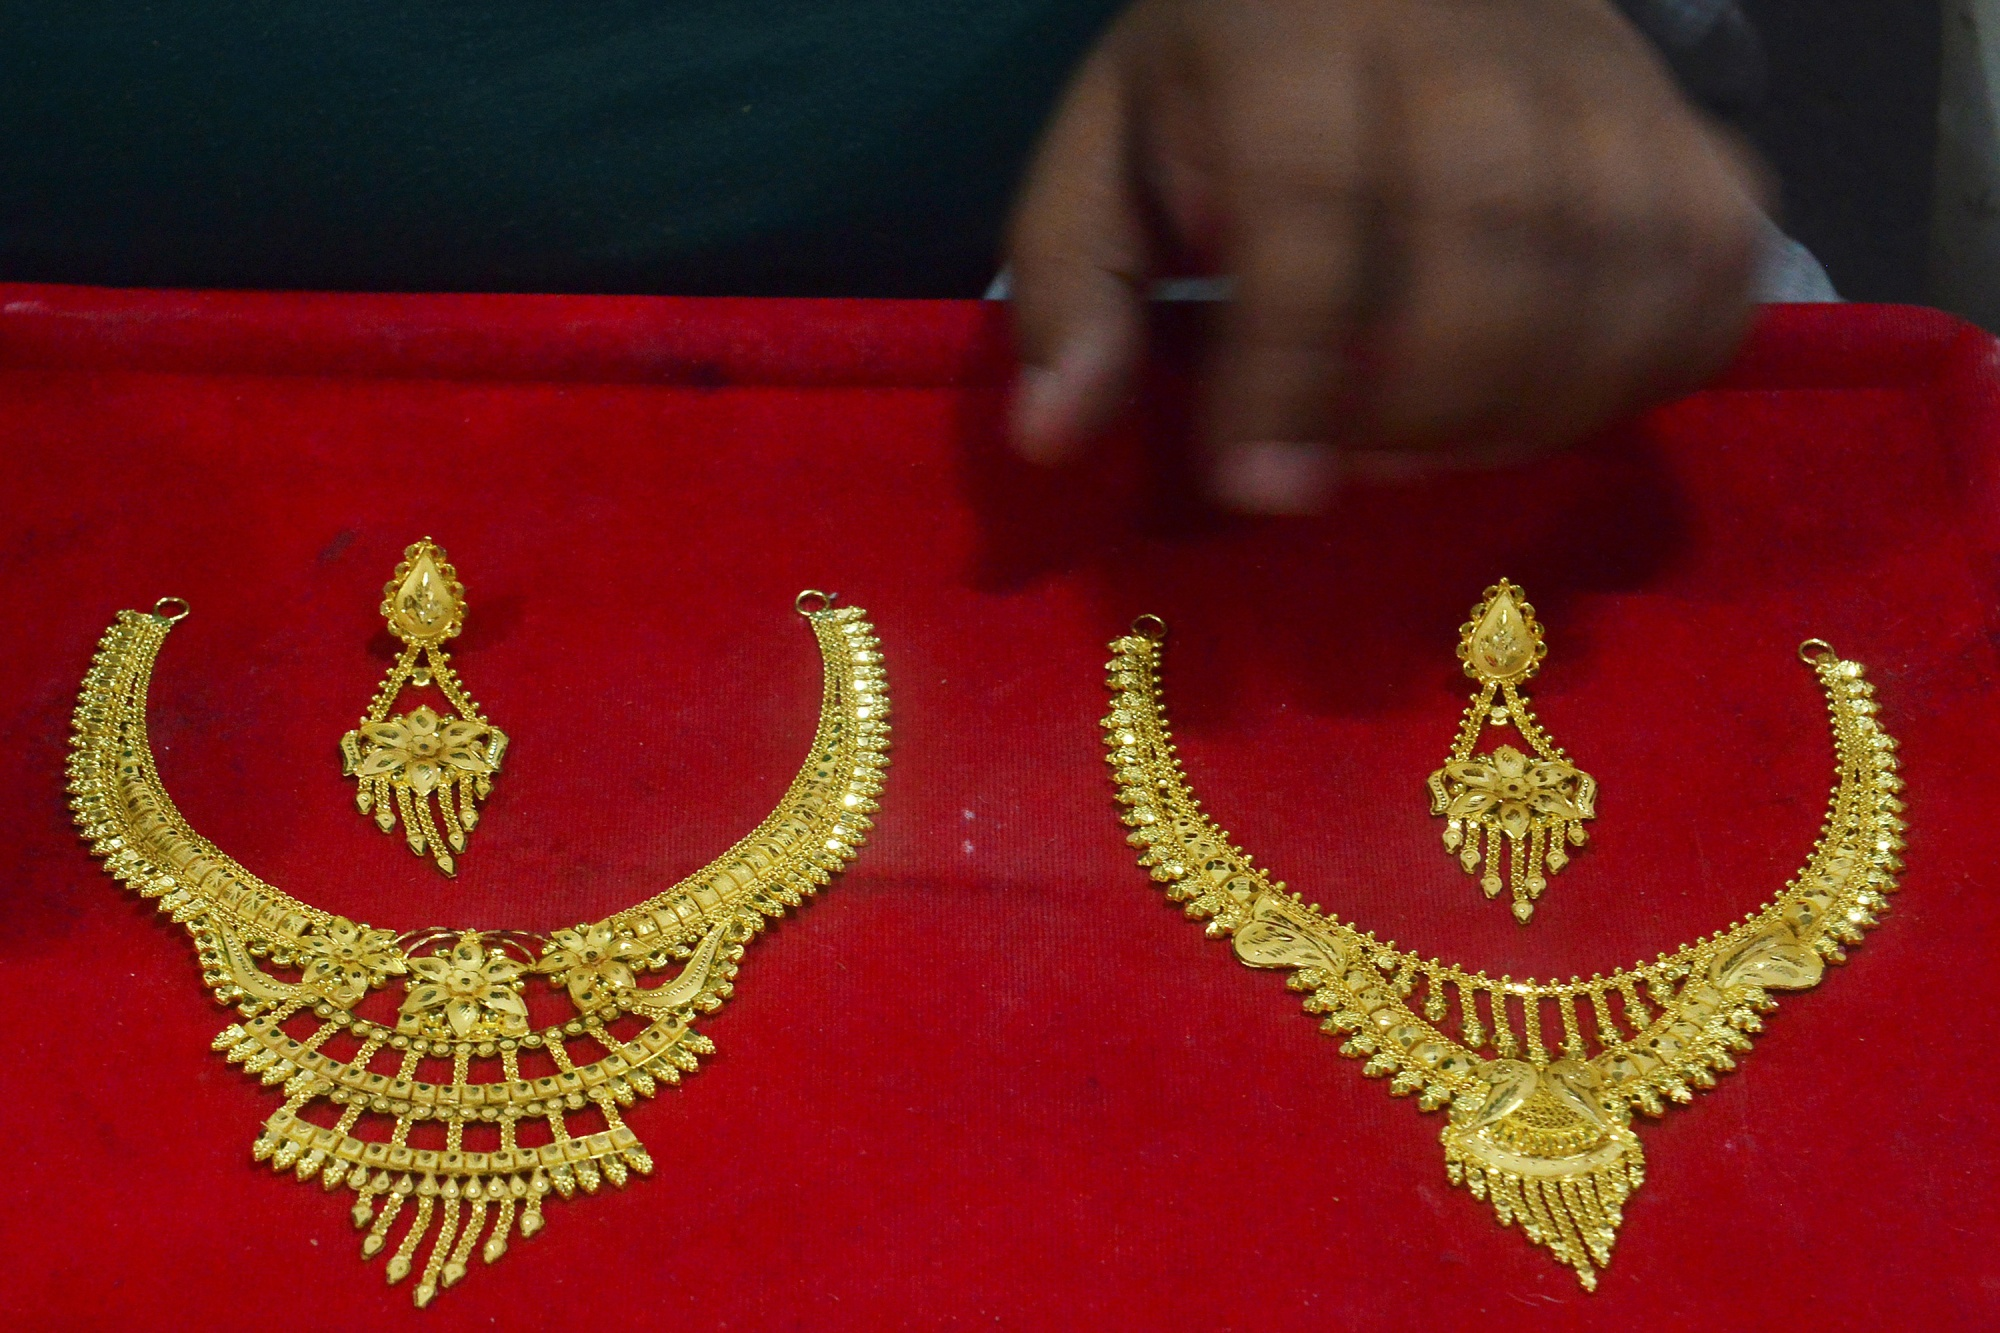 Gold imports had risen in July and August as jewelers readied stocks ahead of festivals.